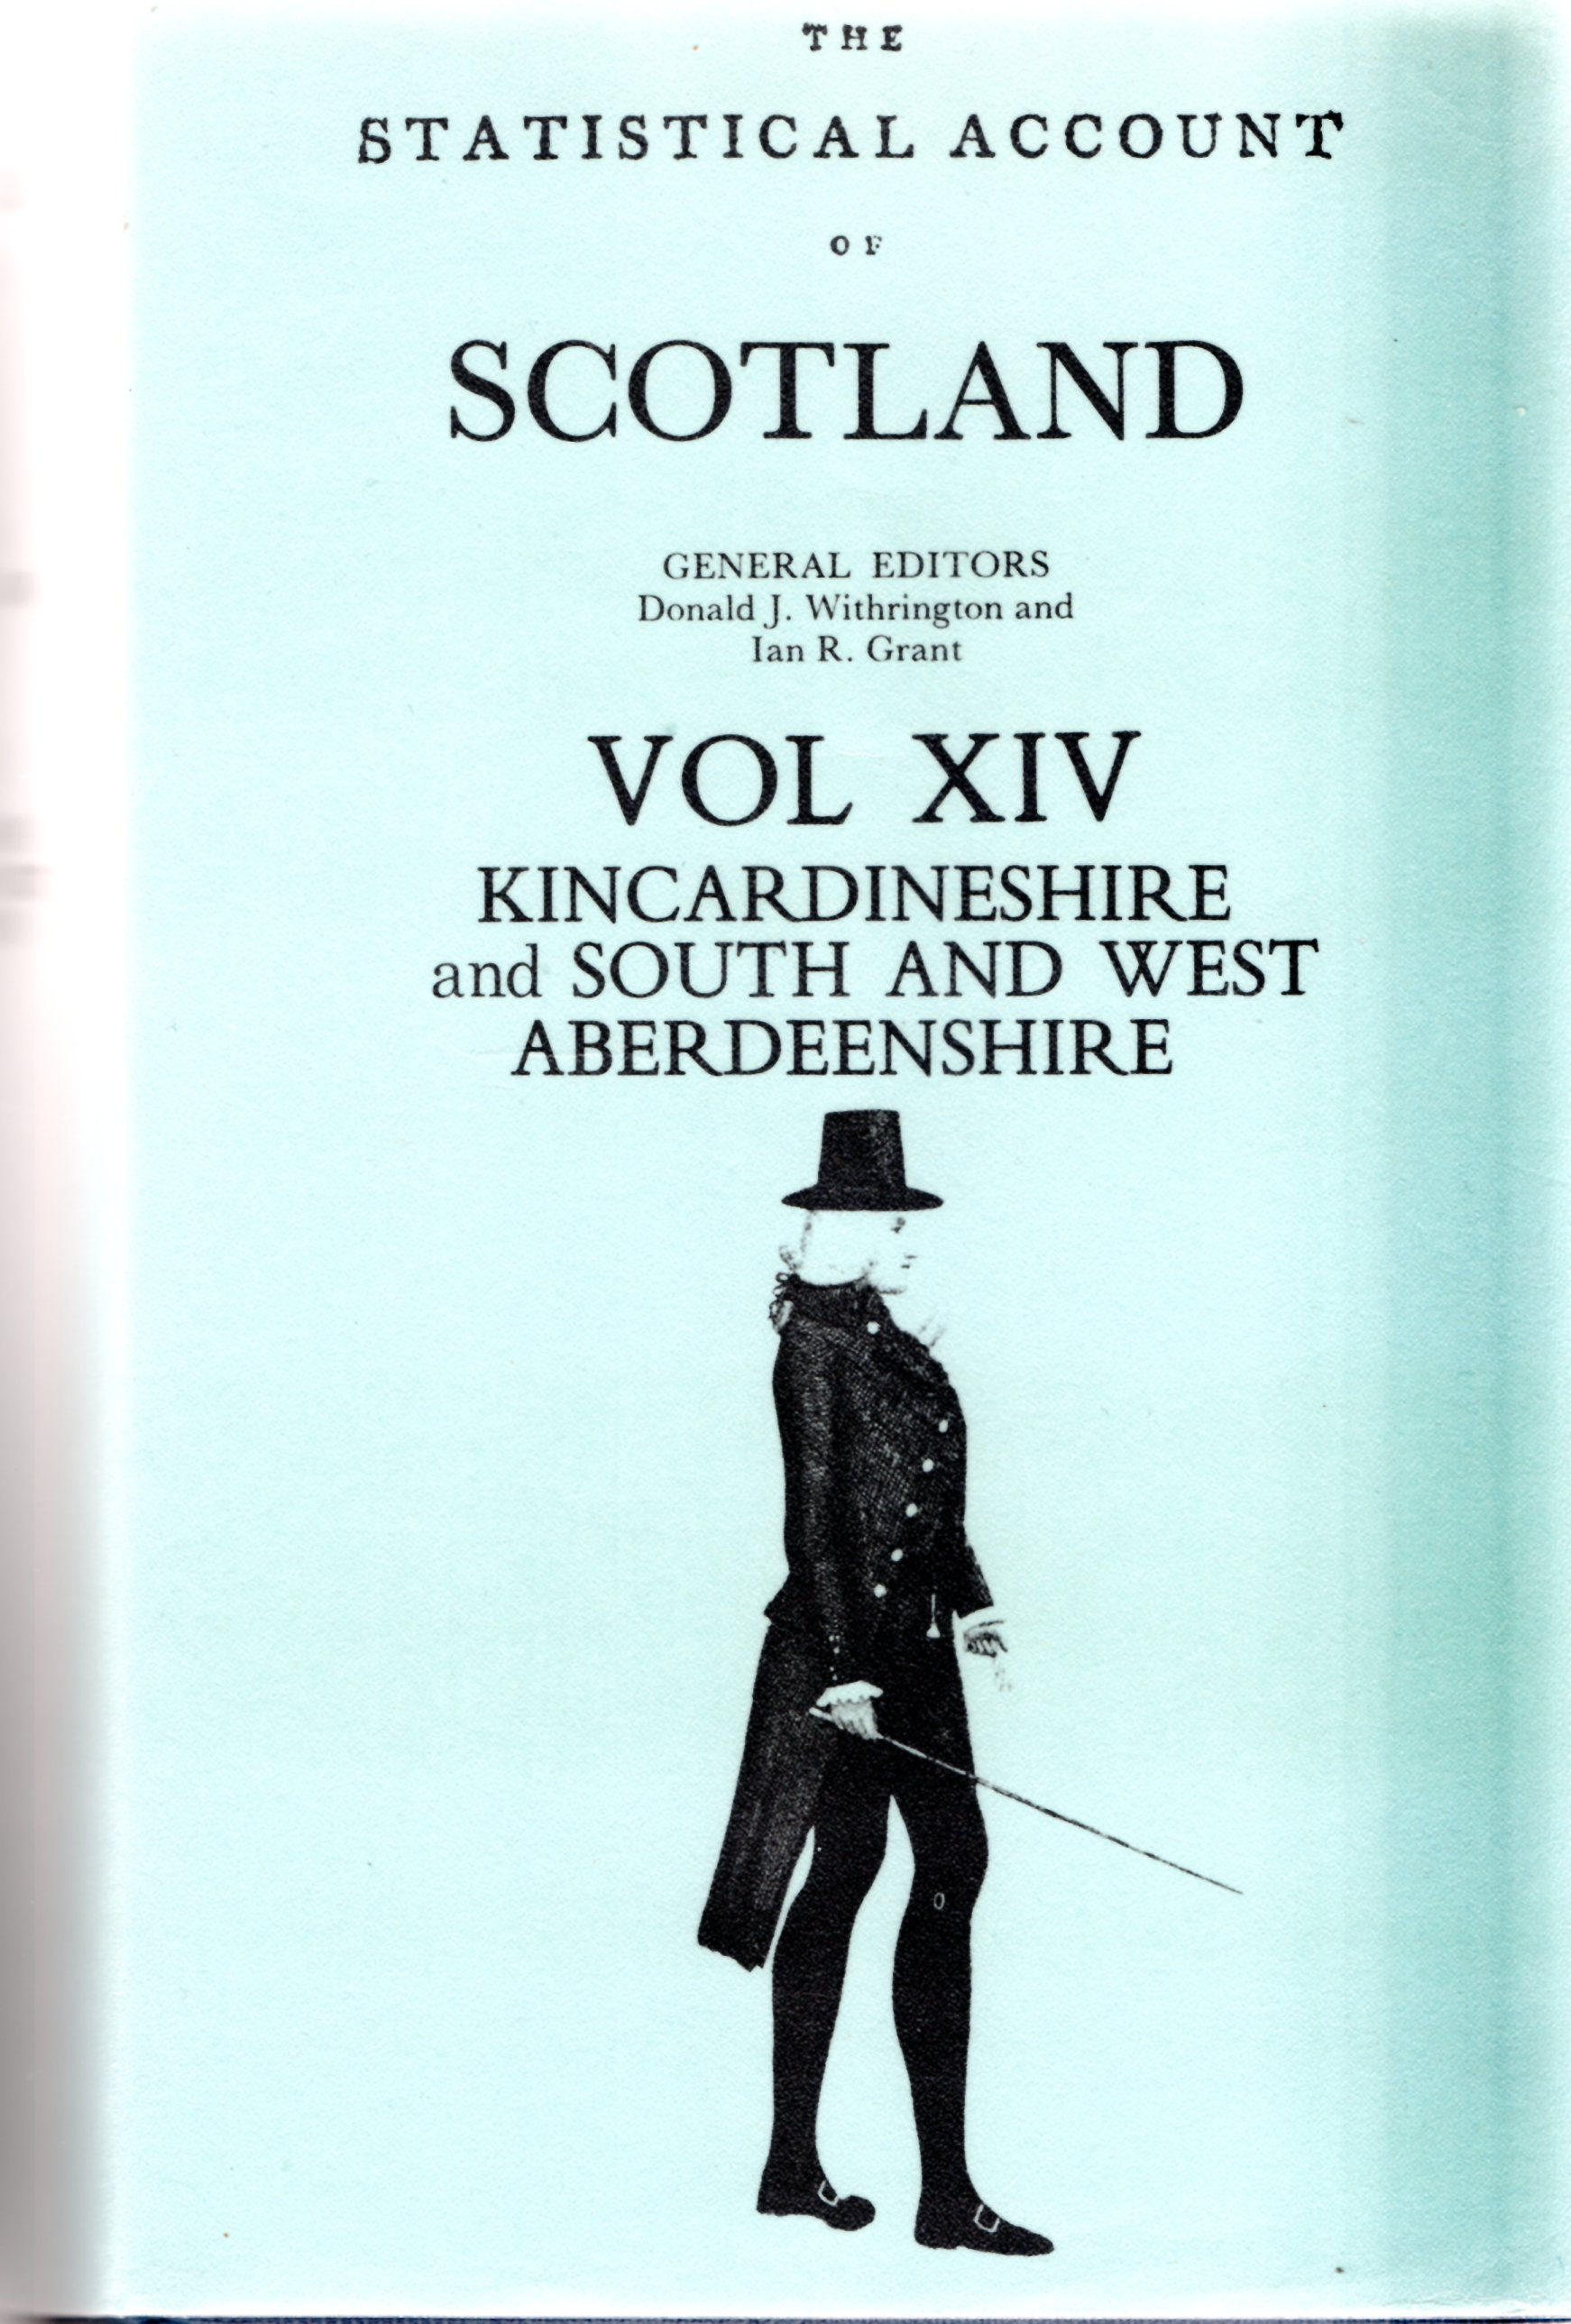 Image for Statistical Account of Scotland: Volume XIV - Kincardineshire and South and West Aberdeenshire